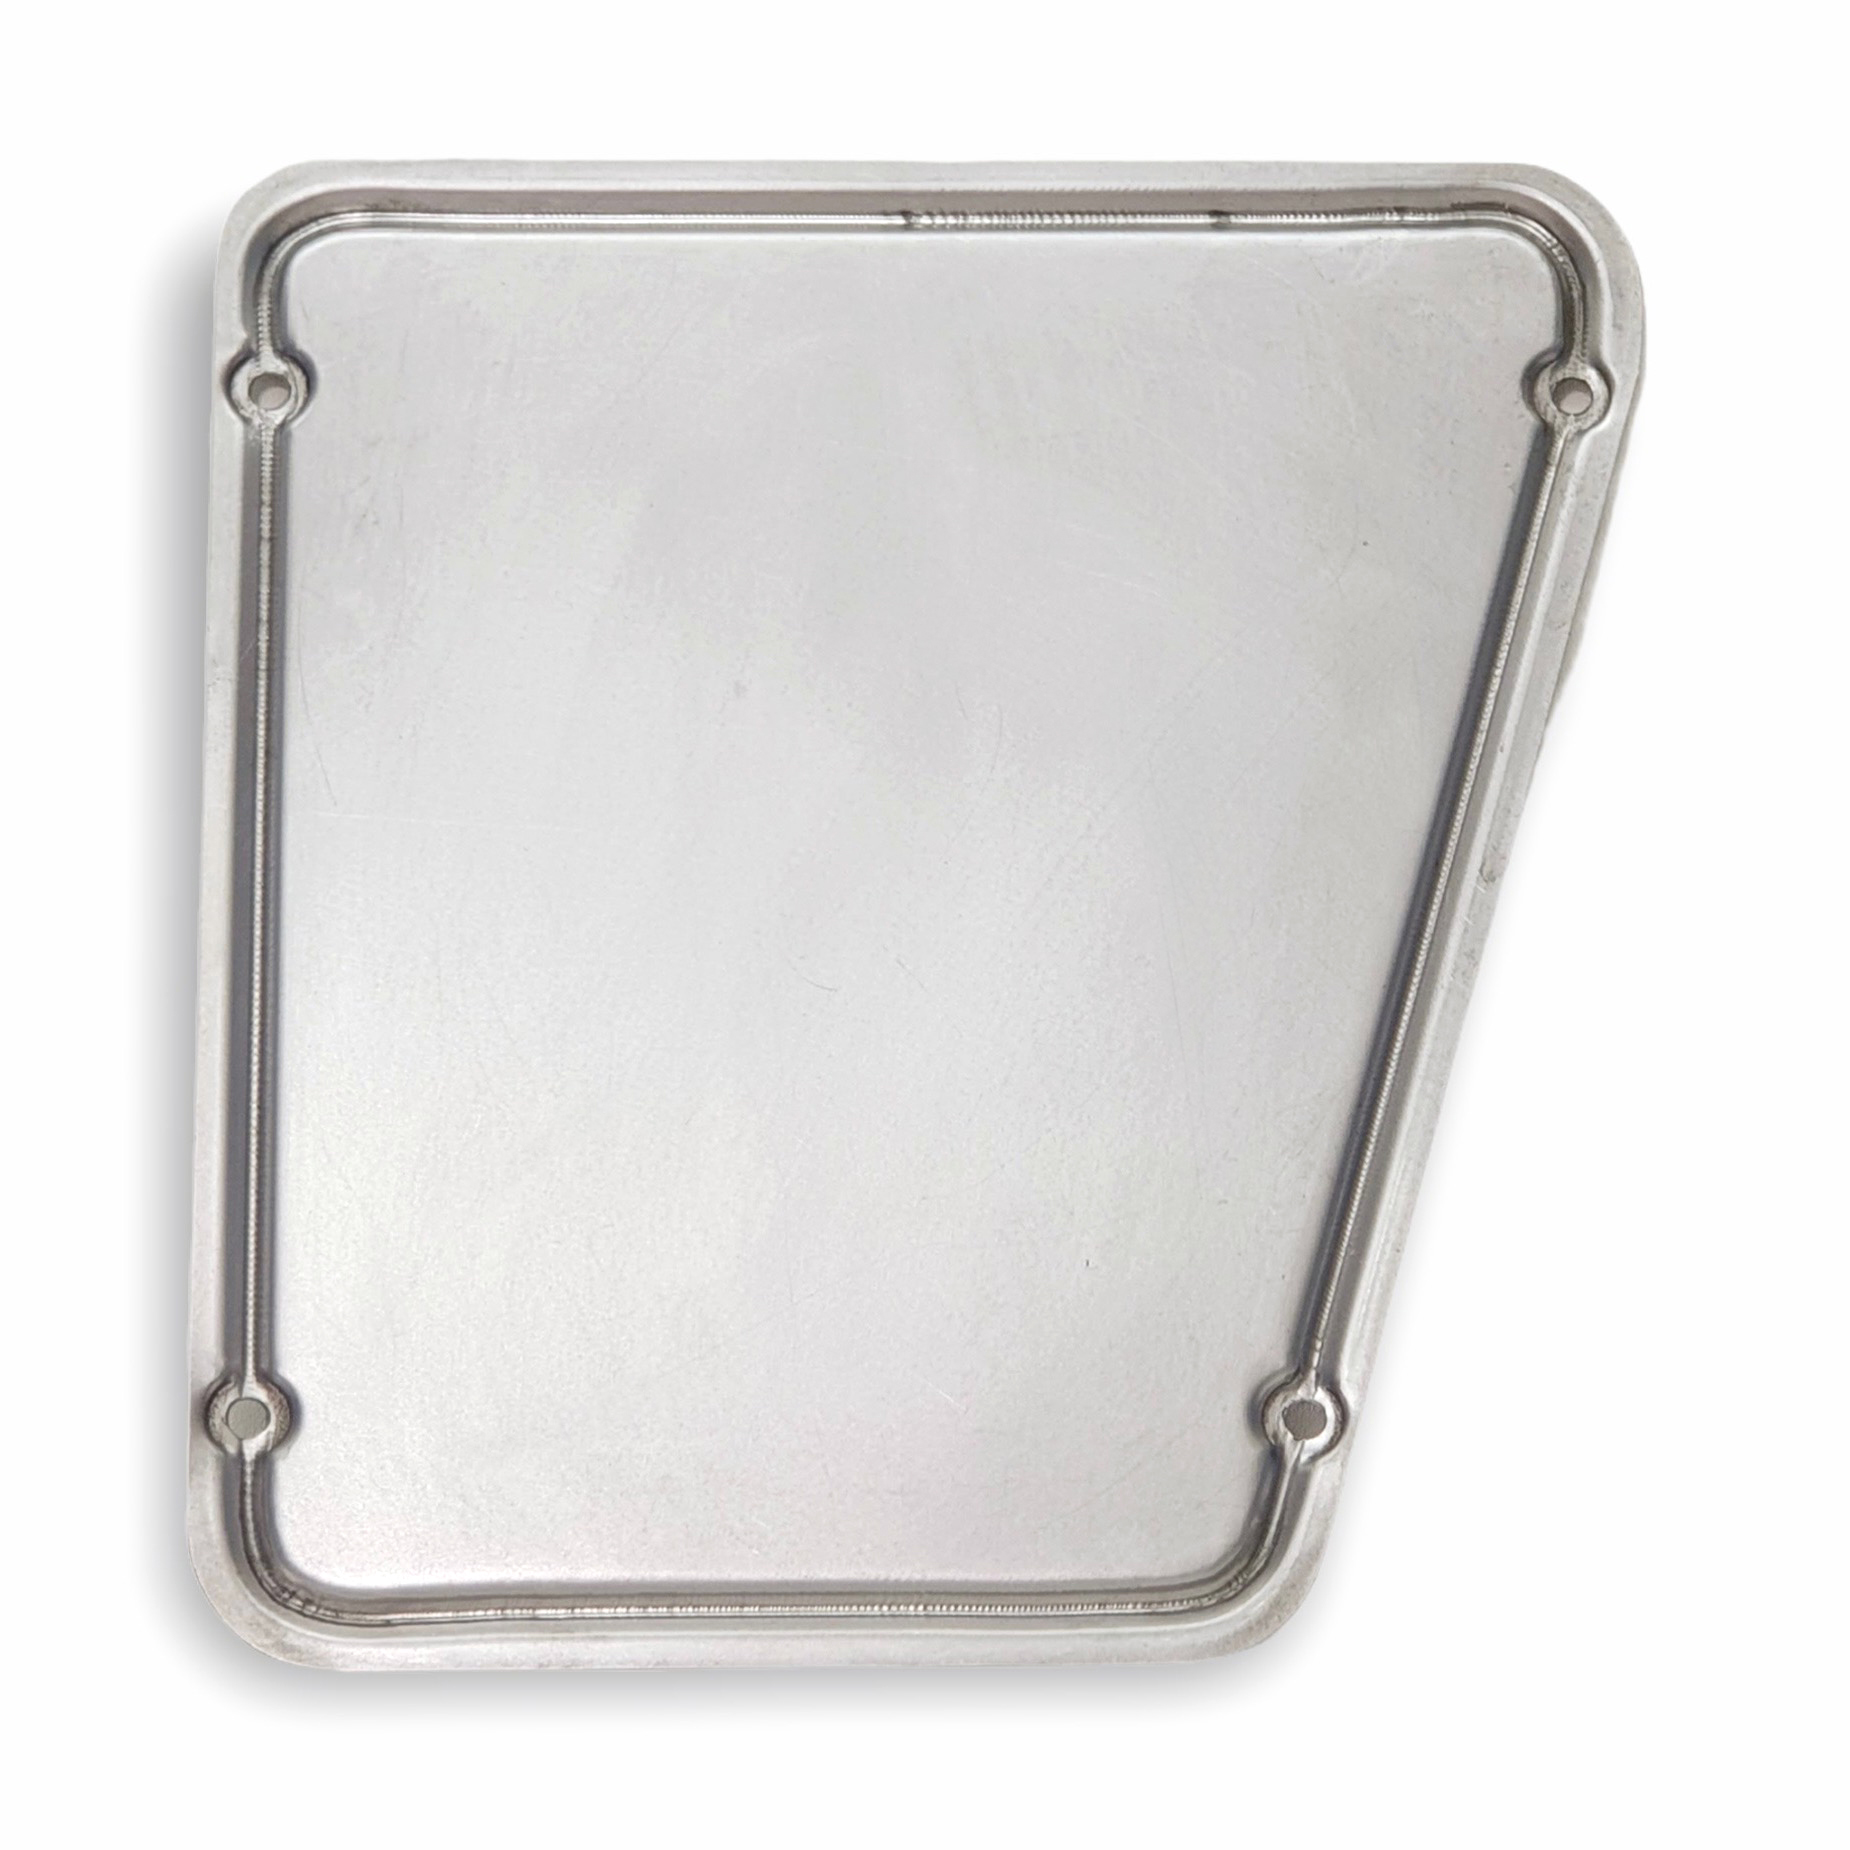 Steering box access cover panel 356- 356BT5 (RHD)